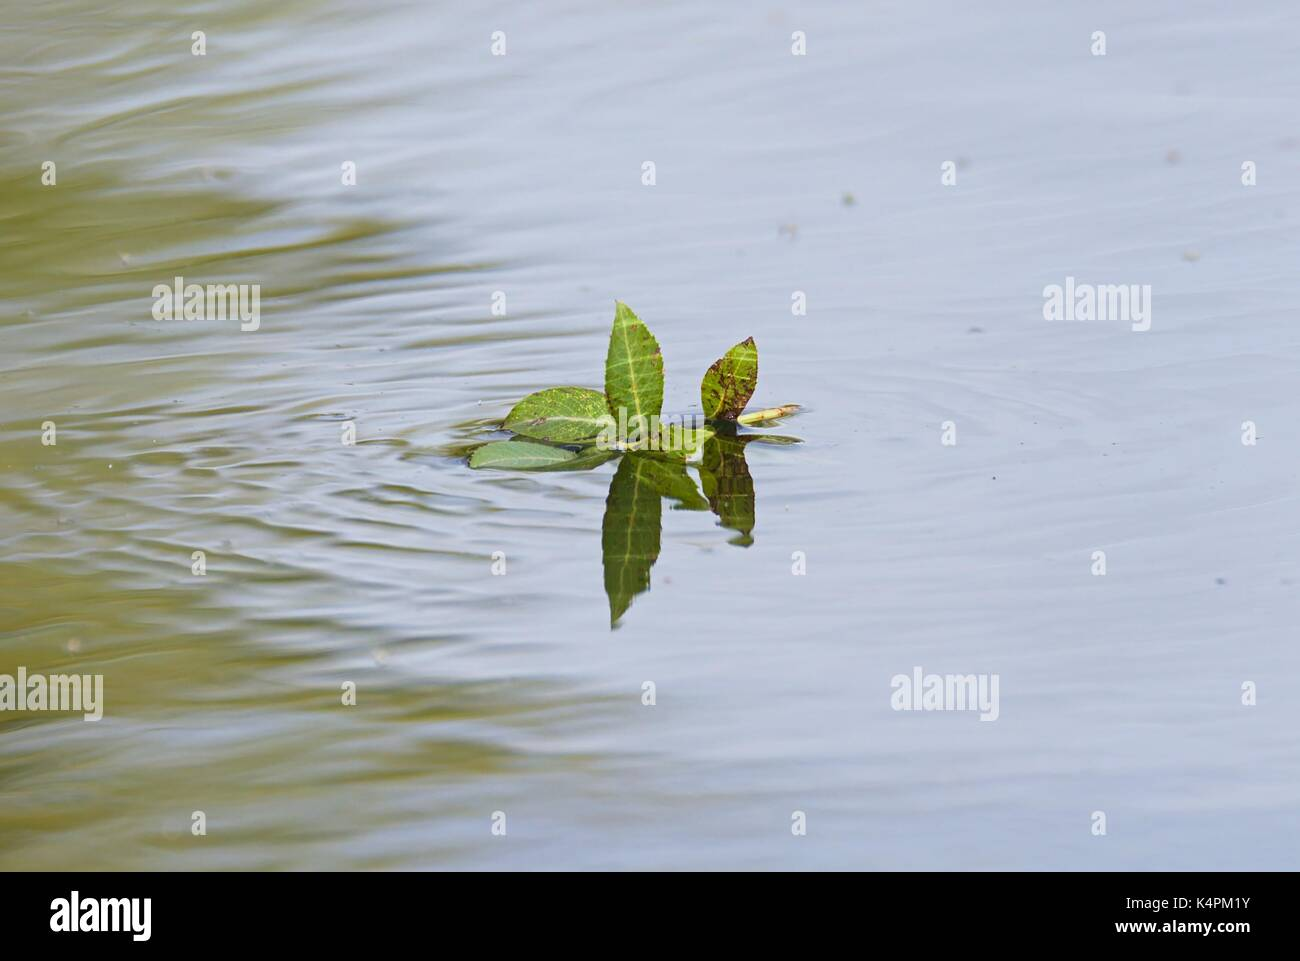 Stem with leaves floating on lake - Stock Image